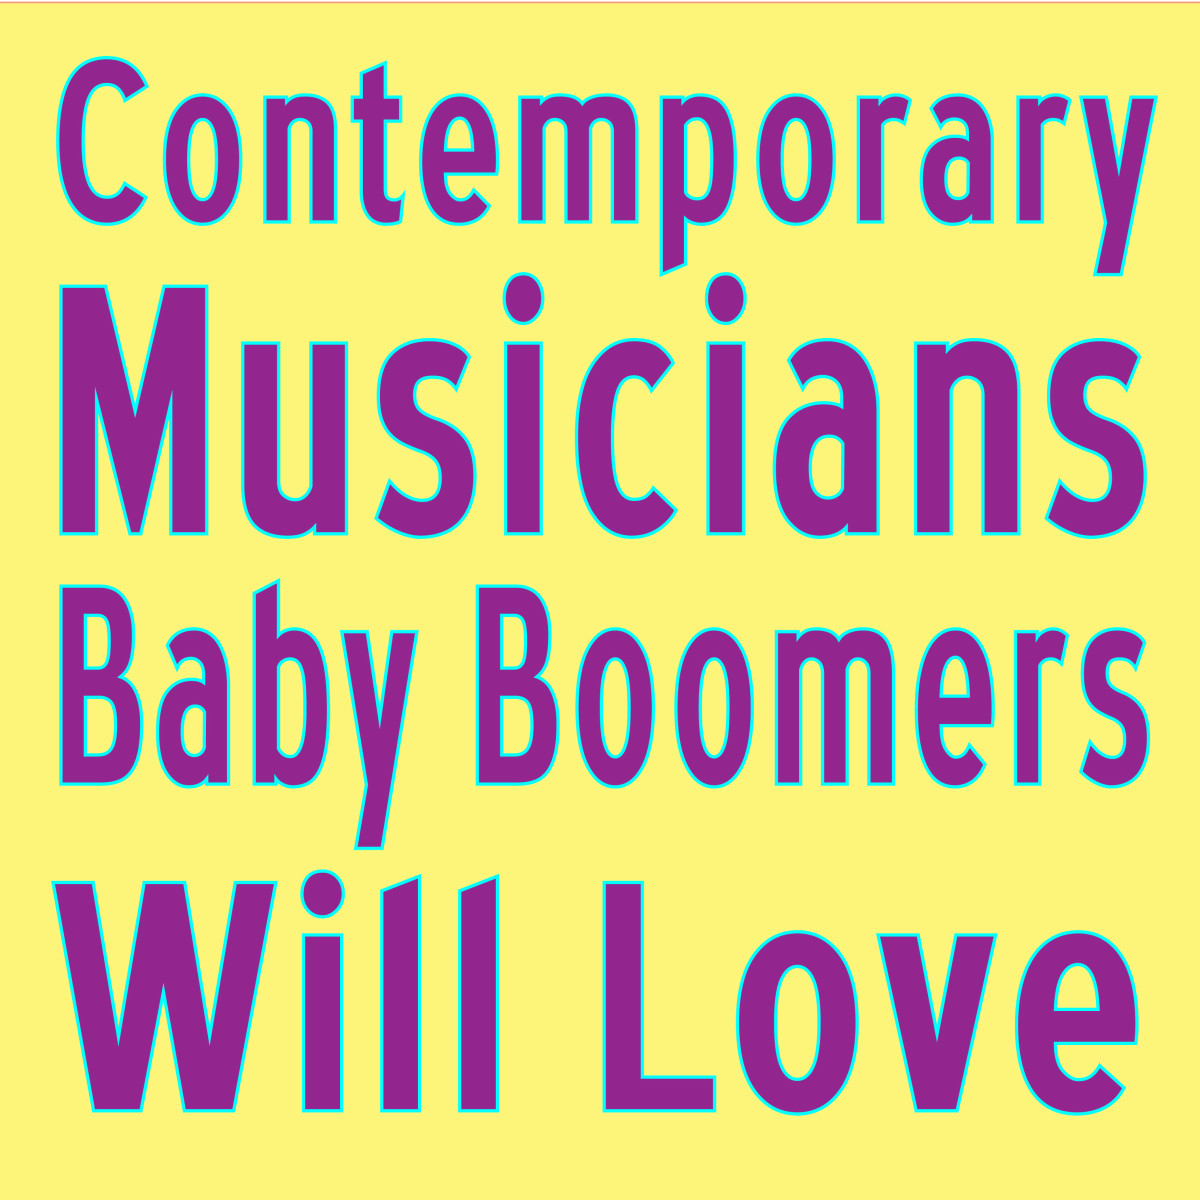 New Music for Old People: 10 Contemporary Musicians Baby Boomers Will Love